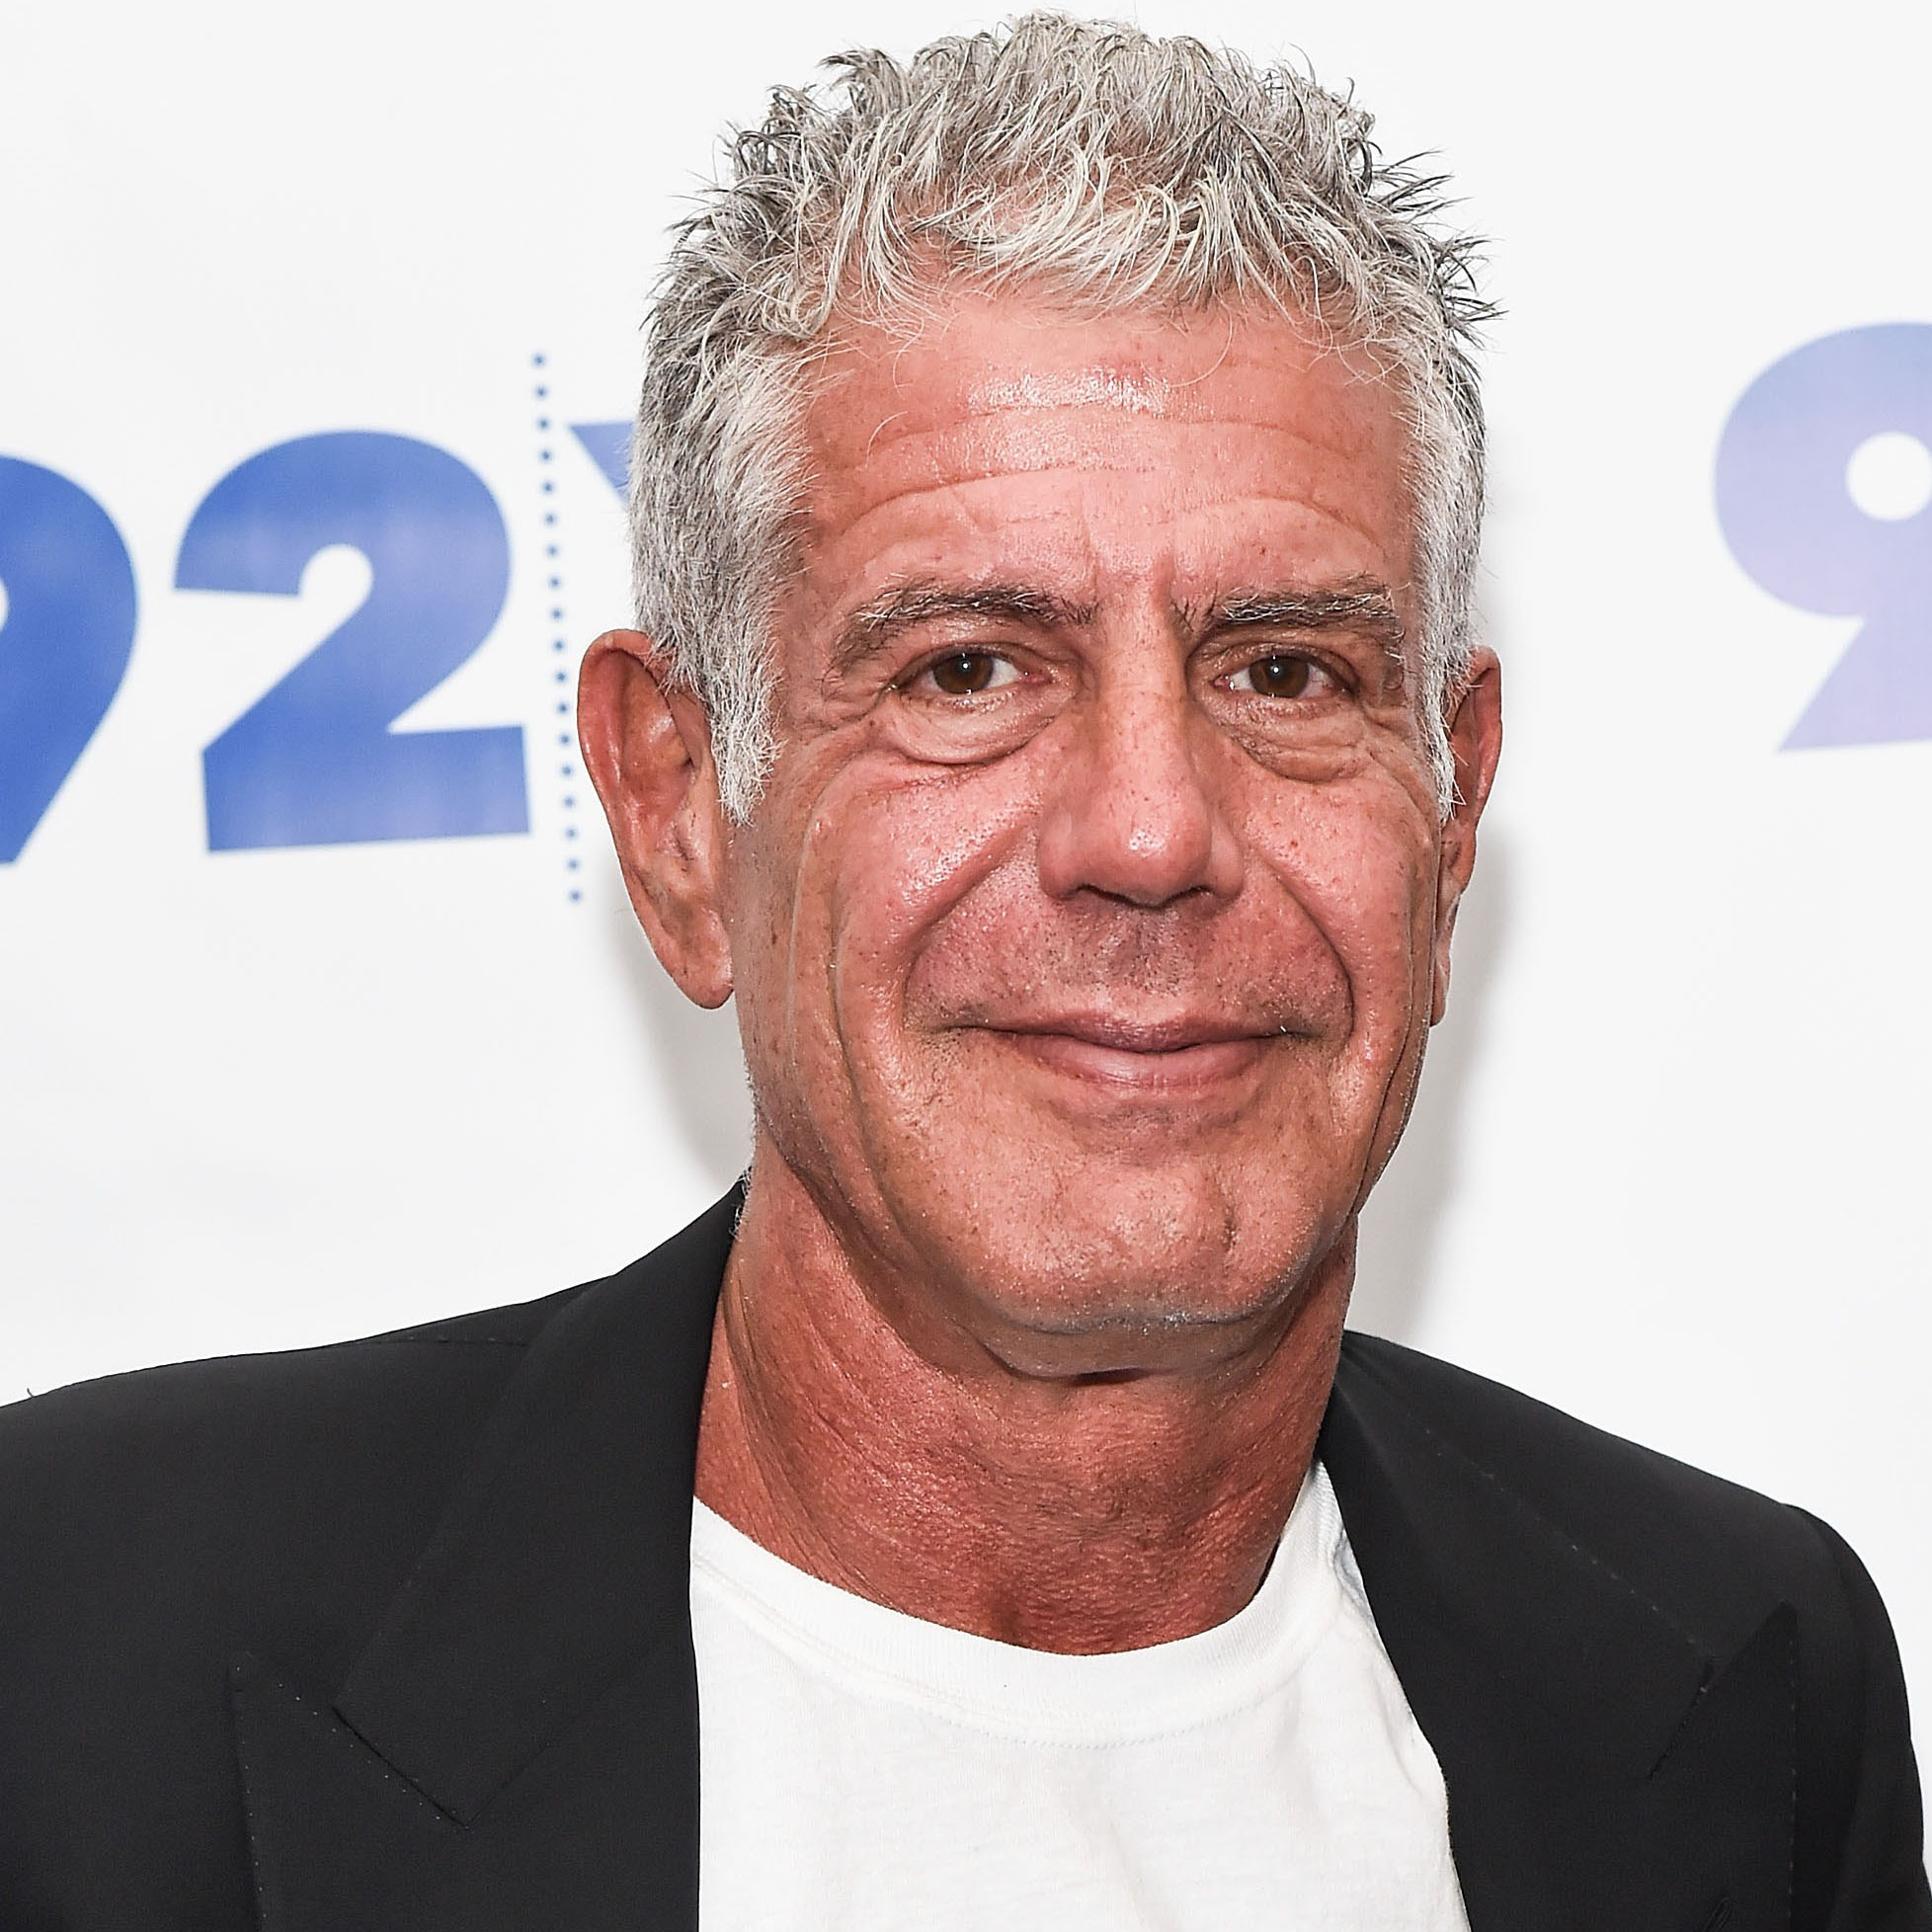 anthony-bourdain-cooking-steak-fwx